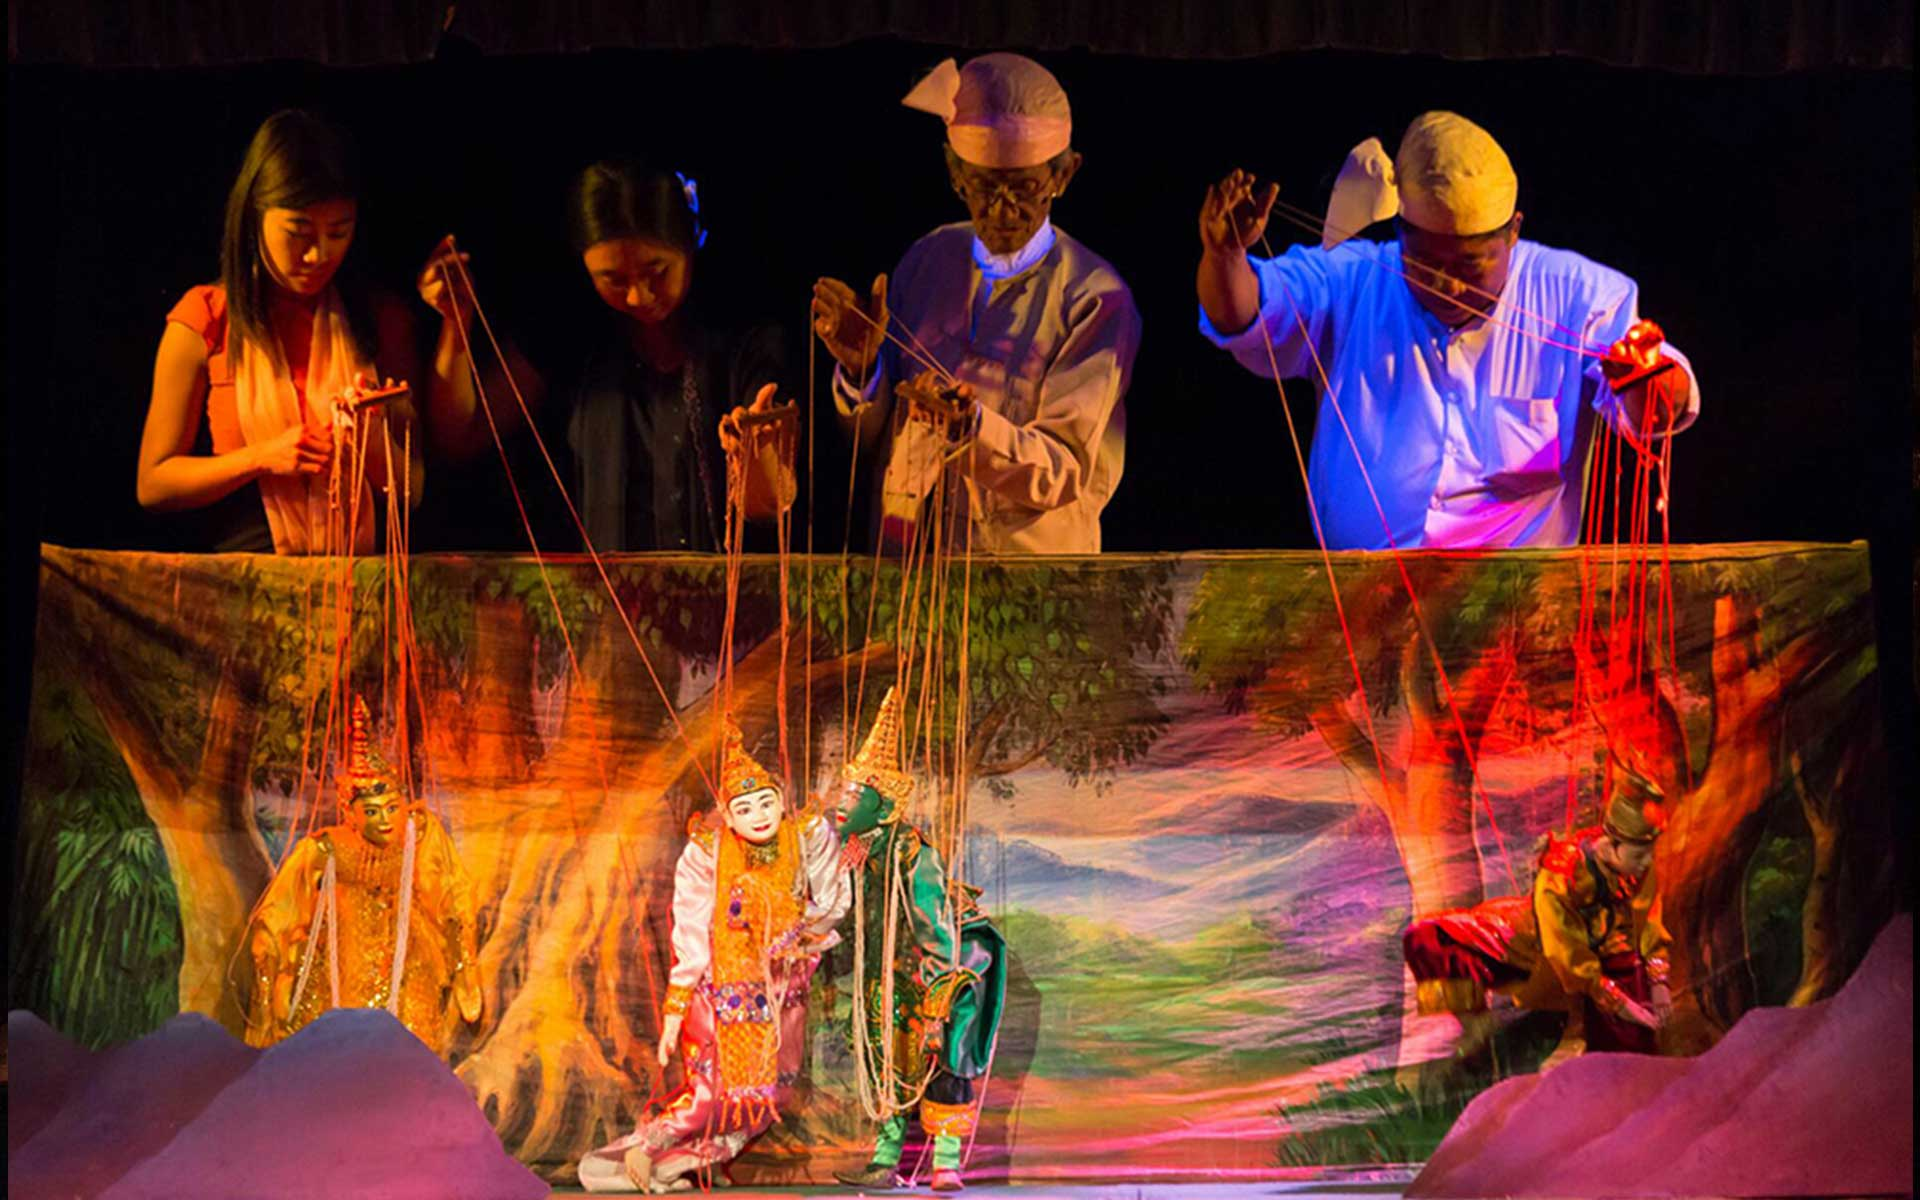 Puppet show at Myanmar Marionette Theatre